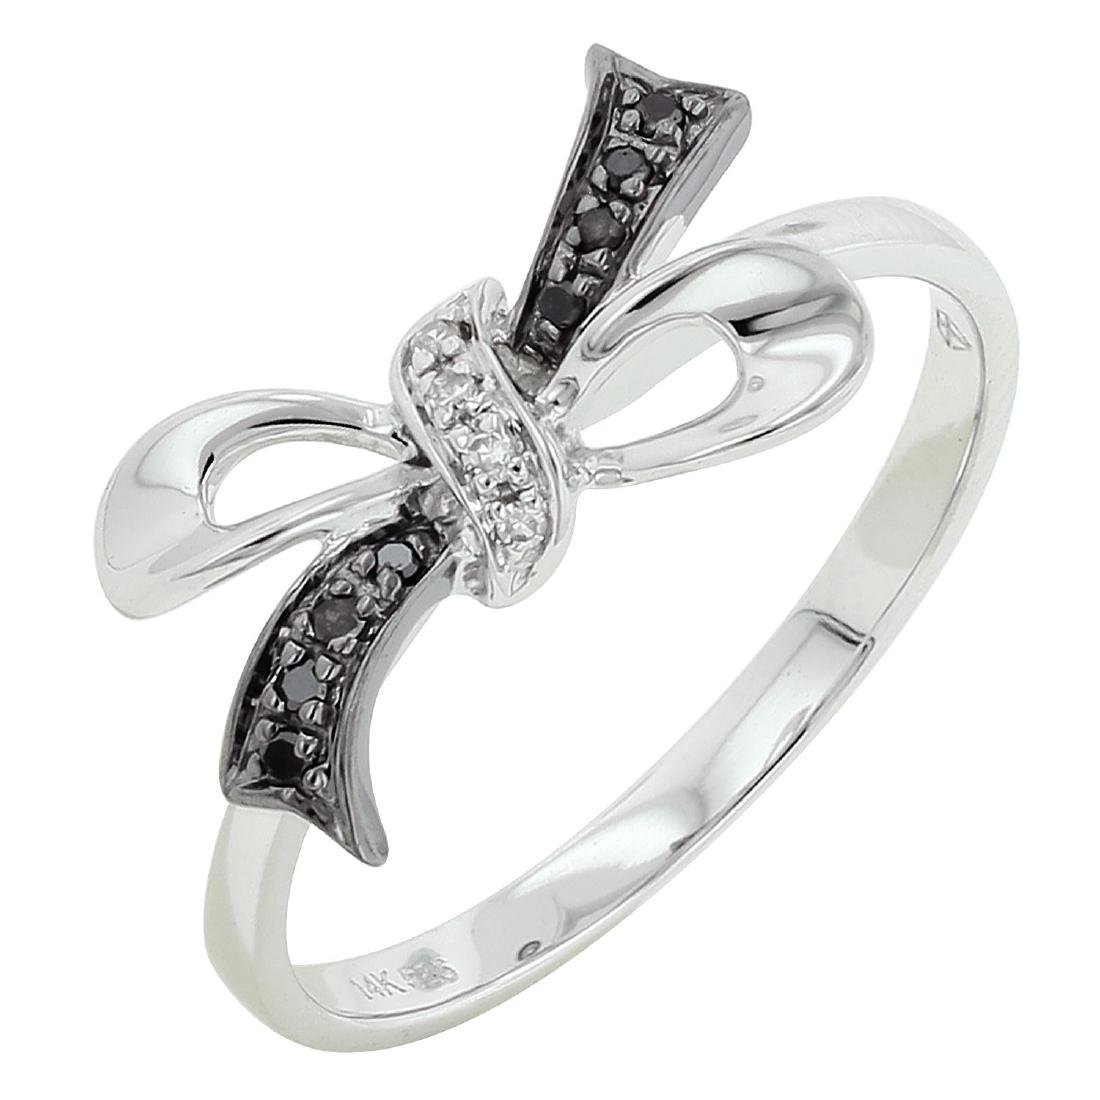 14KT White Gold Women's Diamond Ring - 2